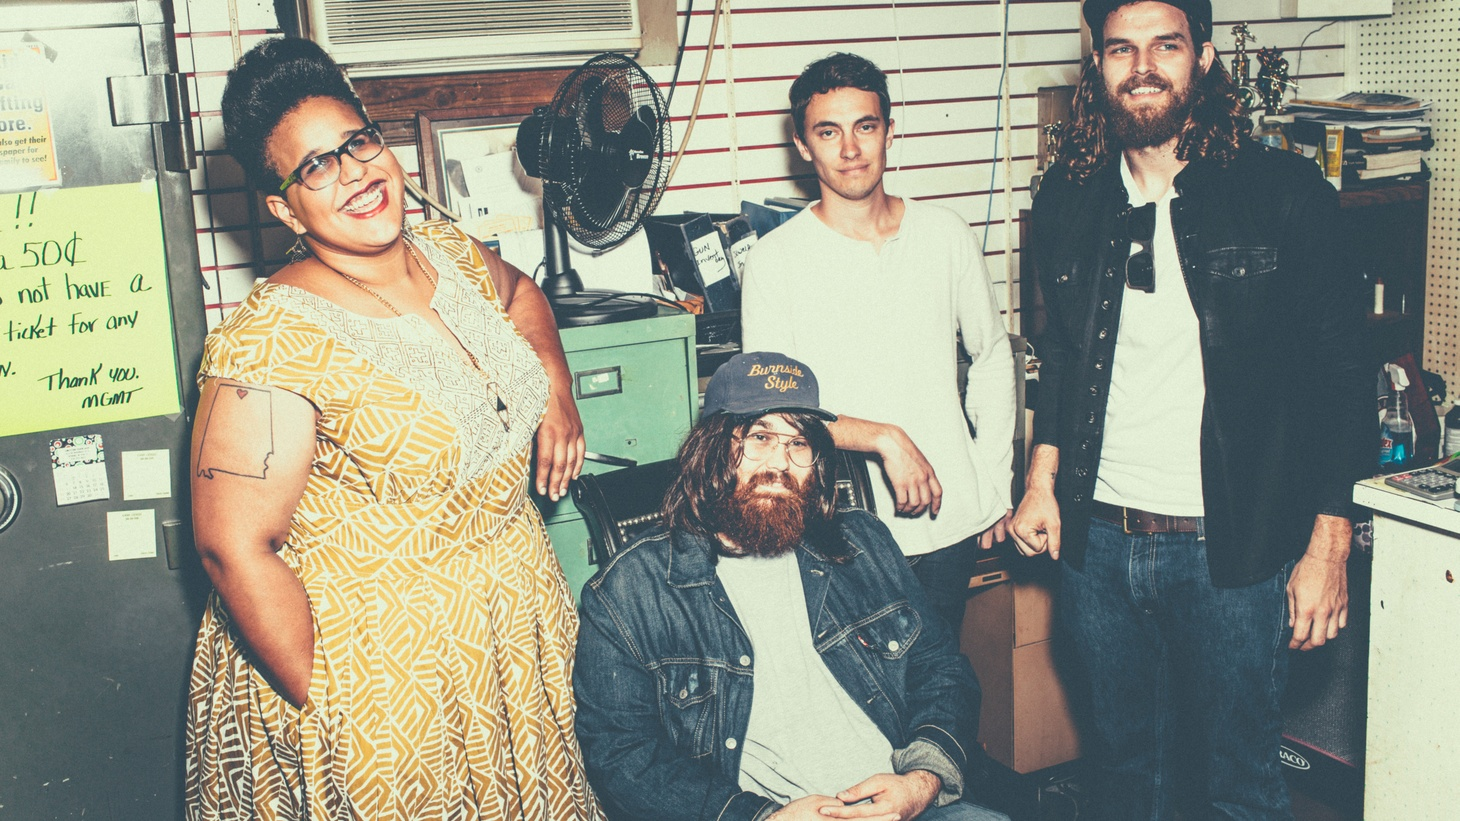 Musical powerhouse Brittany Howard and her merry band of rockin' friends return with a highly-anticipated sophomore album.